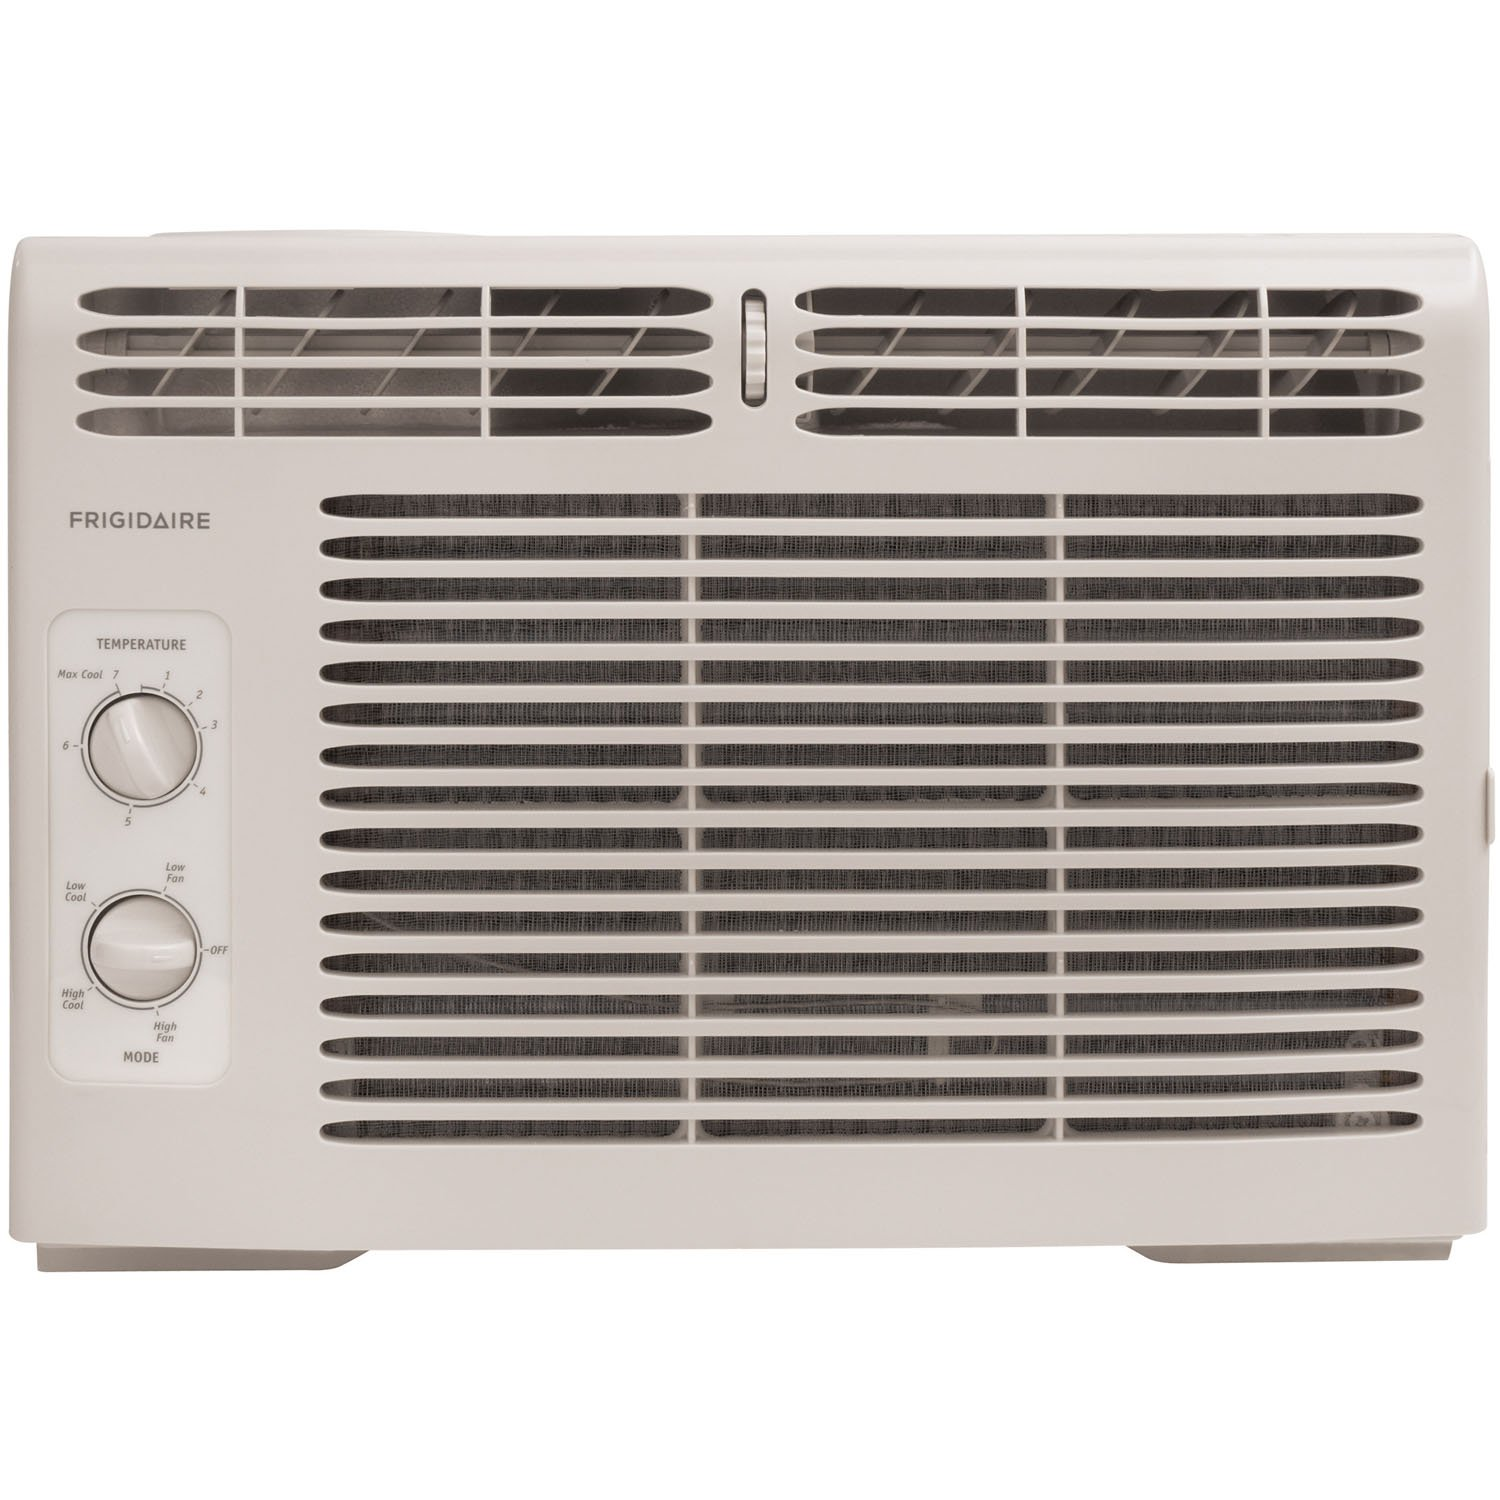 FRA052XT7 Review Best 5 000 BTU Window Air Conditioner 2016 #726459